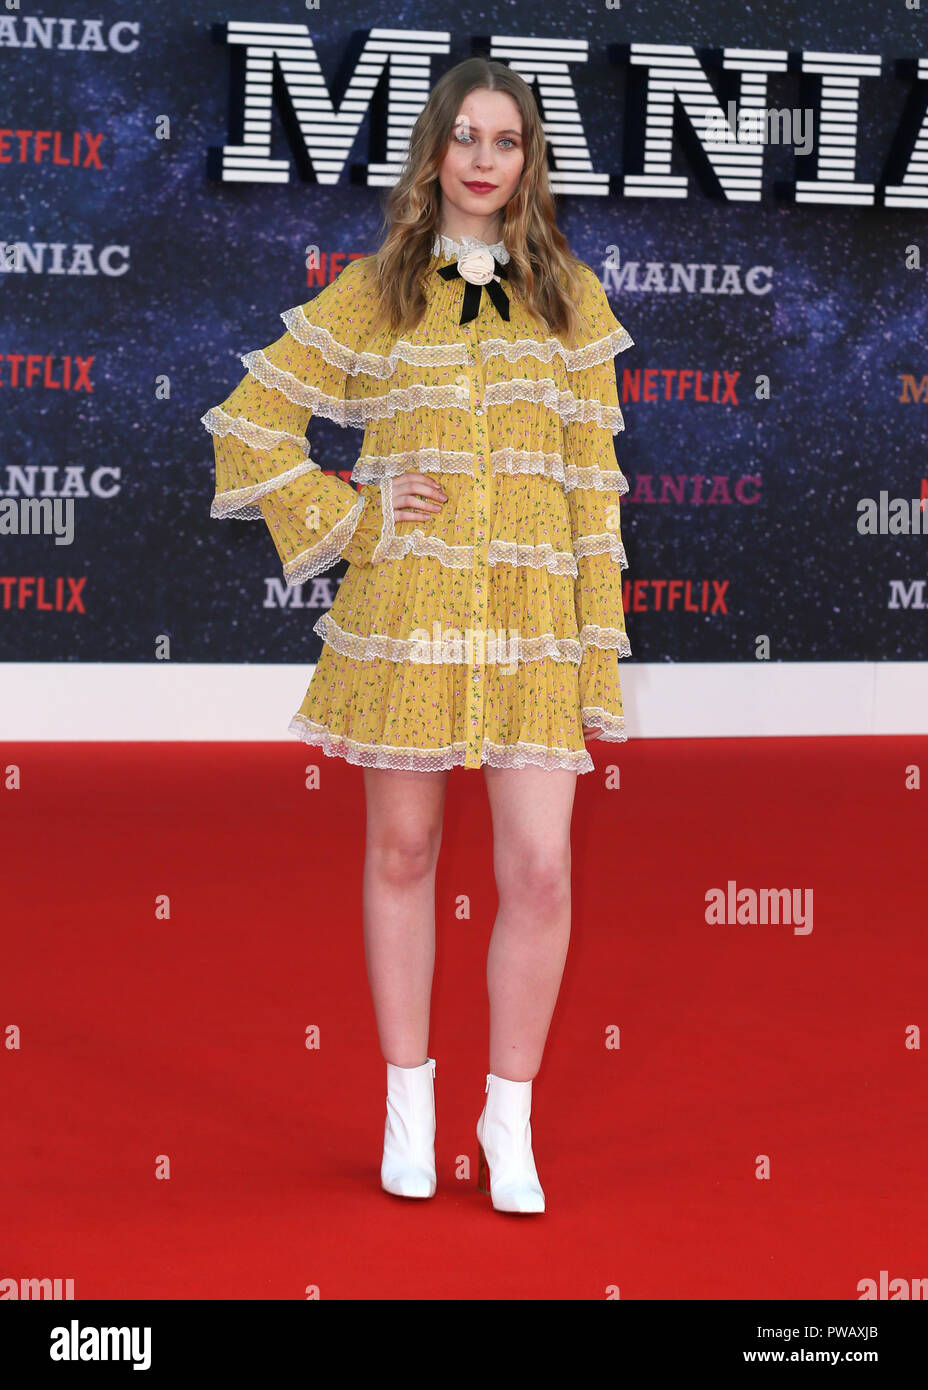 The World Premiere of 'Maniac' held at the BFI Southbank - Arrivals  Featuring: Sorcha Groundsell Where: London, United Kingdom When: 13 Sep 2018 Credit: Mario Mitsis/WENN.com - Stock Image